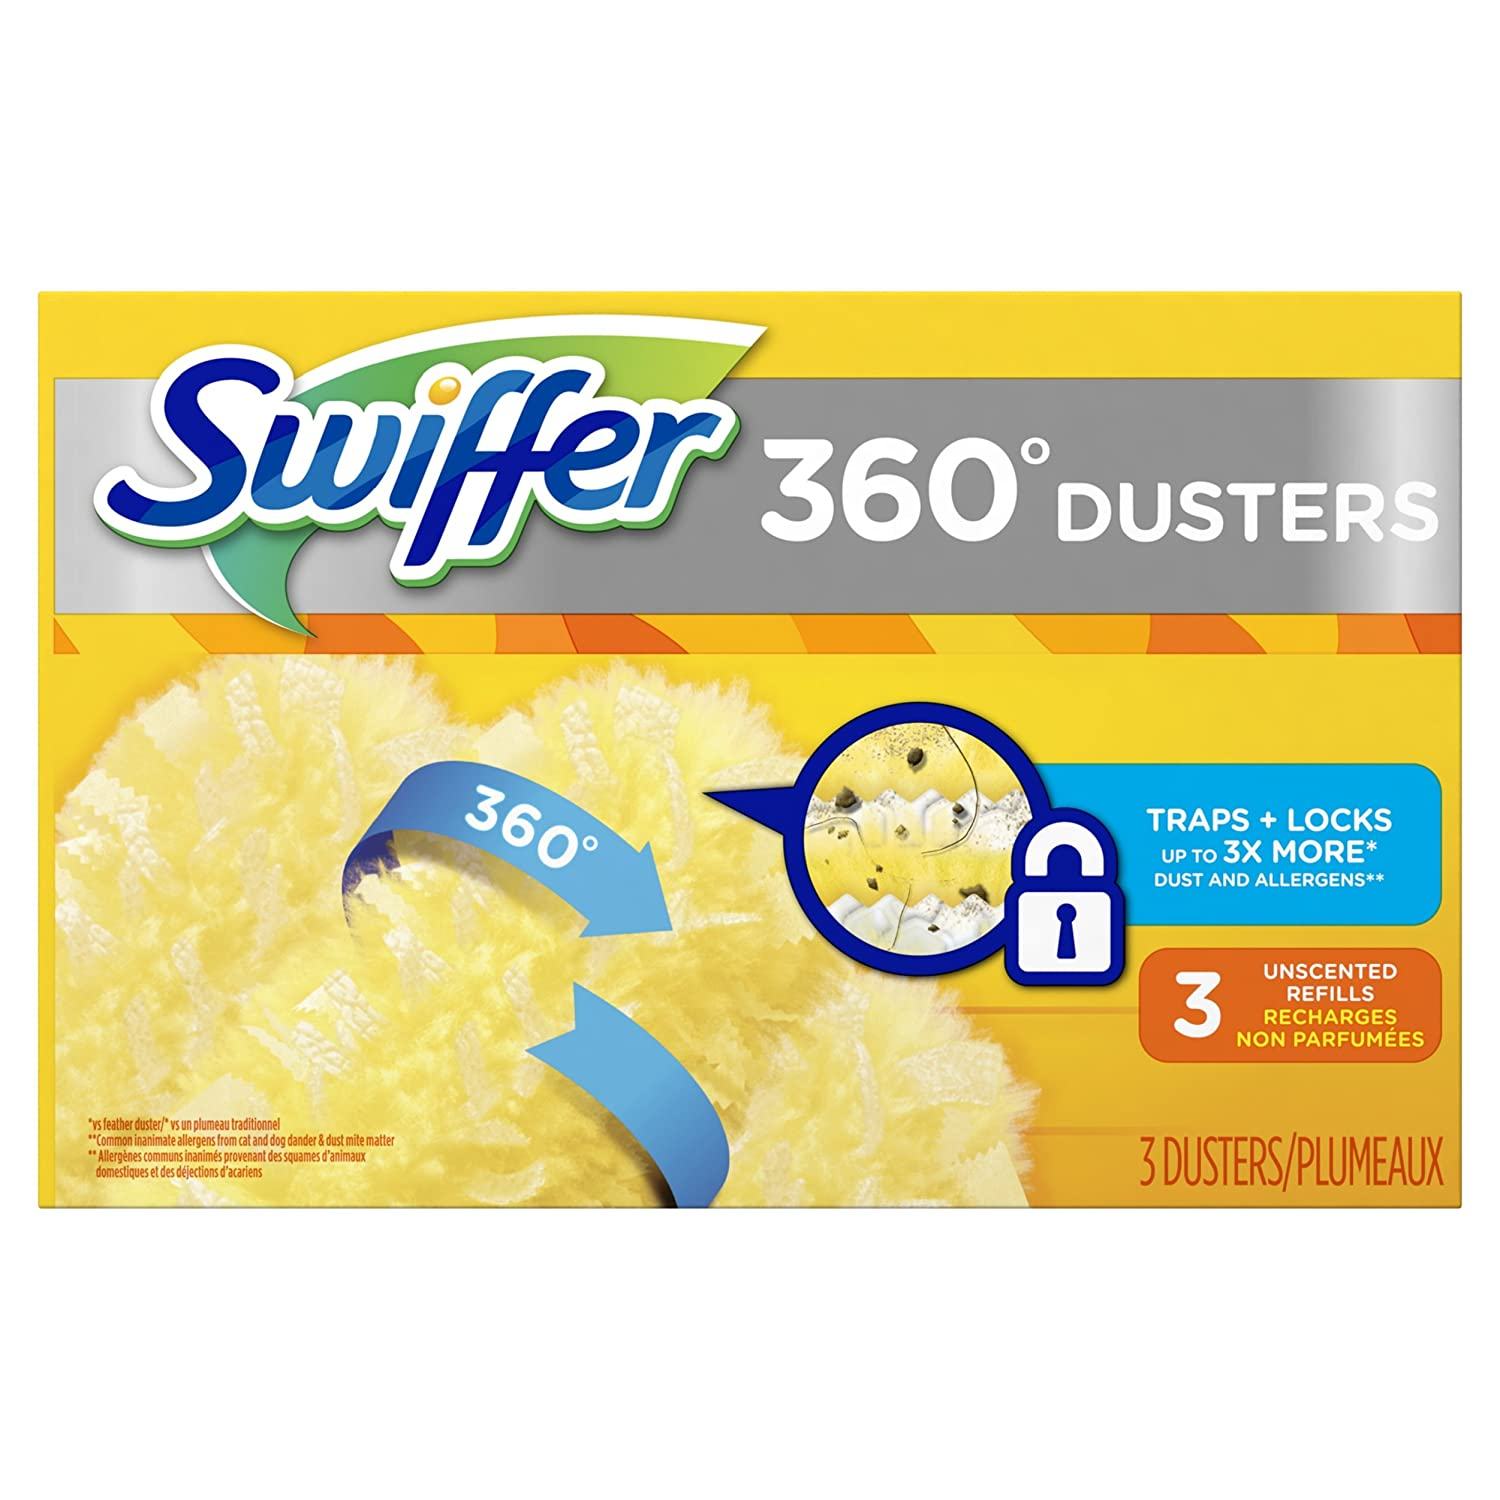 Swiffer Dusters 360 Extendable Handle Starter Kit, 4-Count AX-AY-ABHI-114784